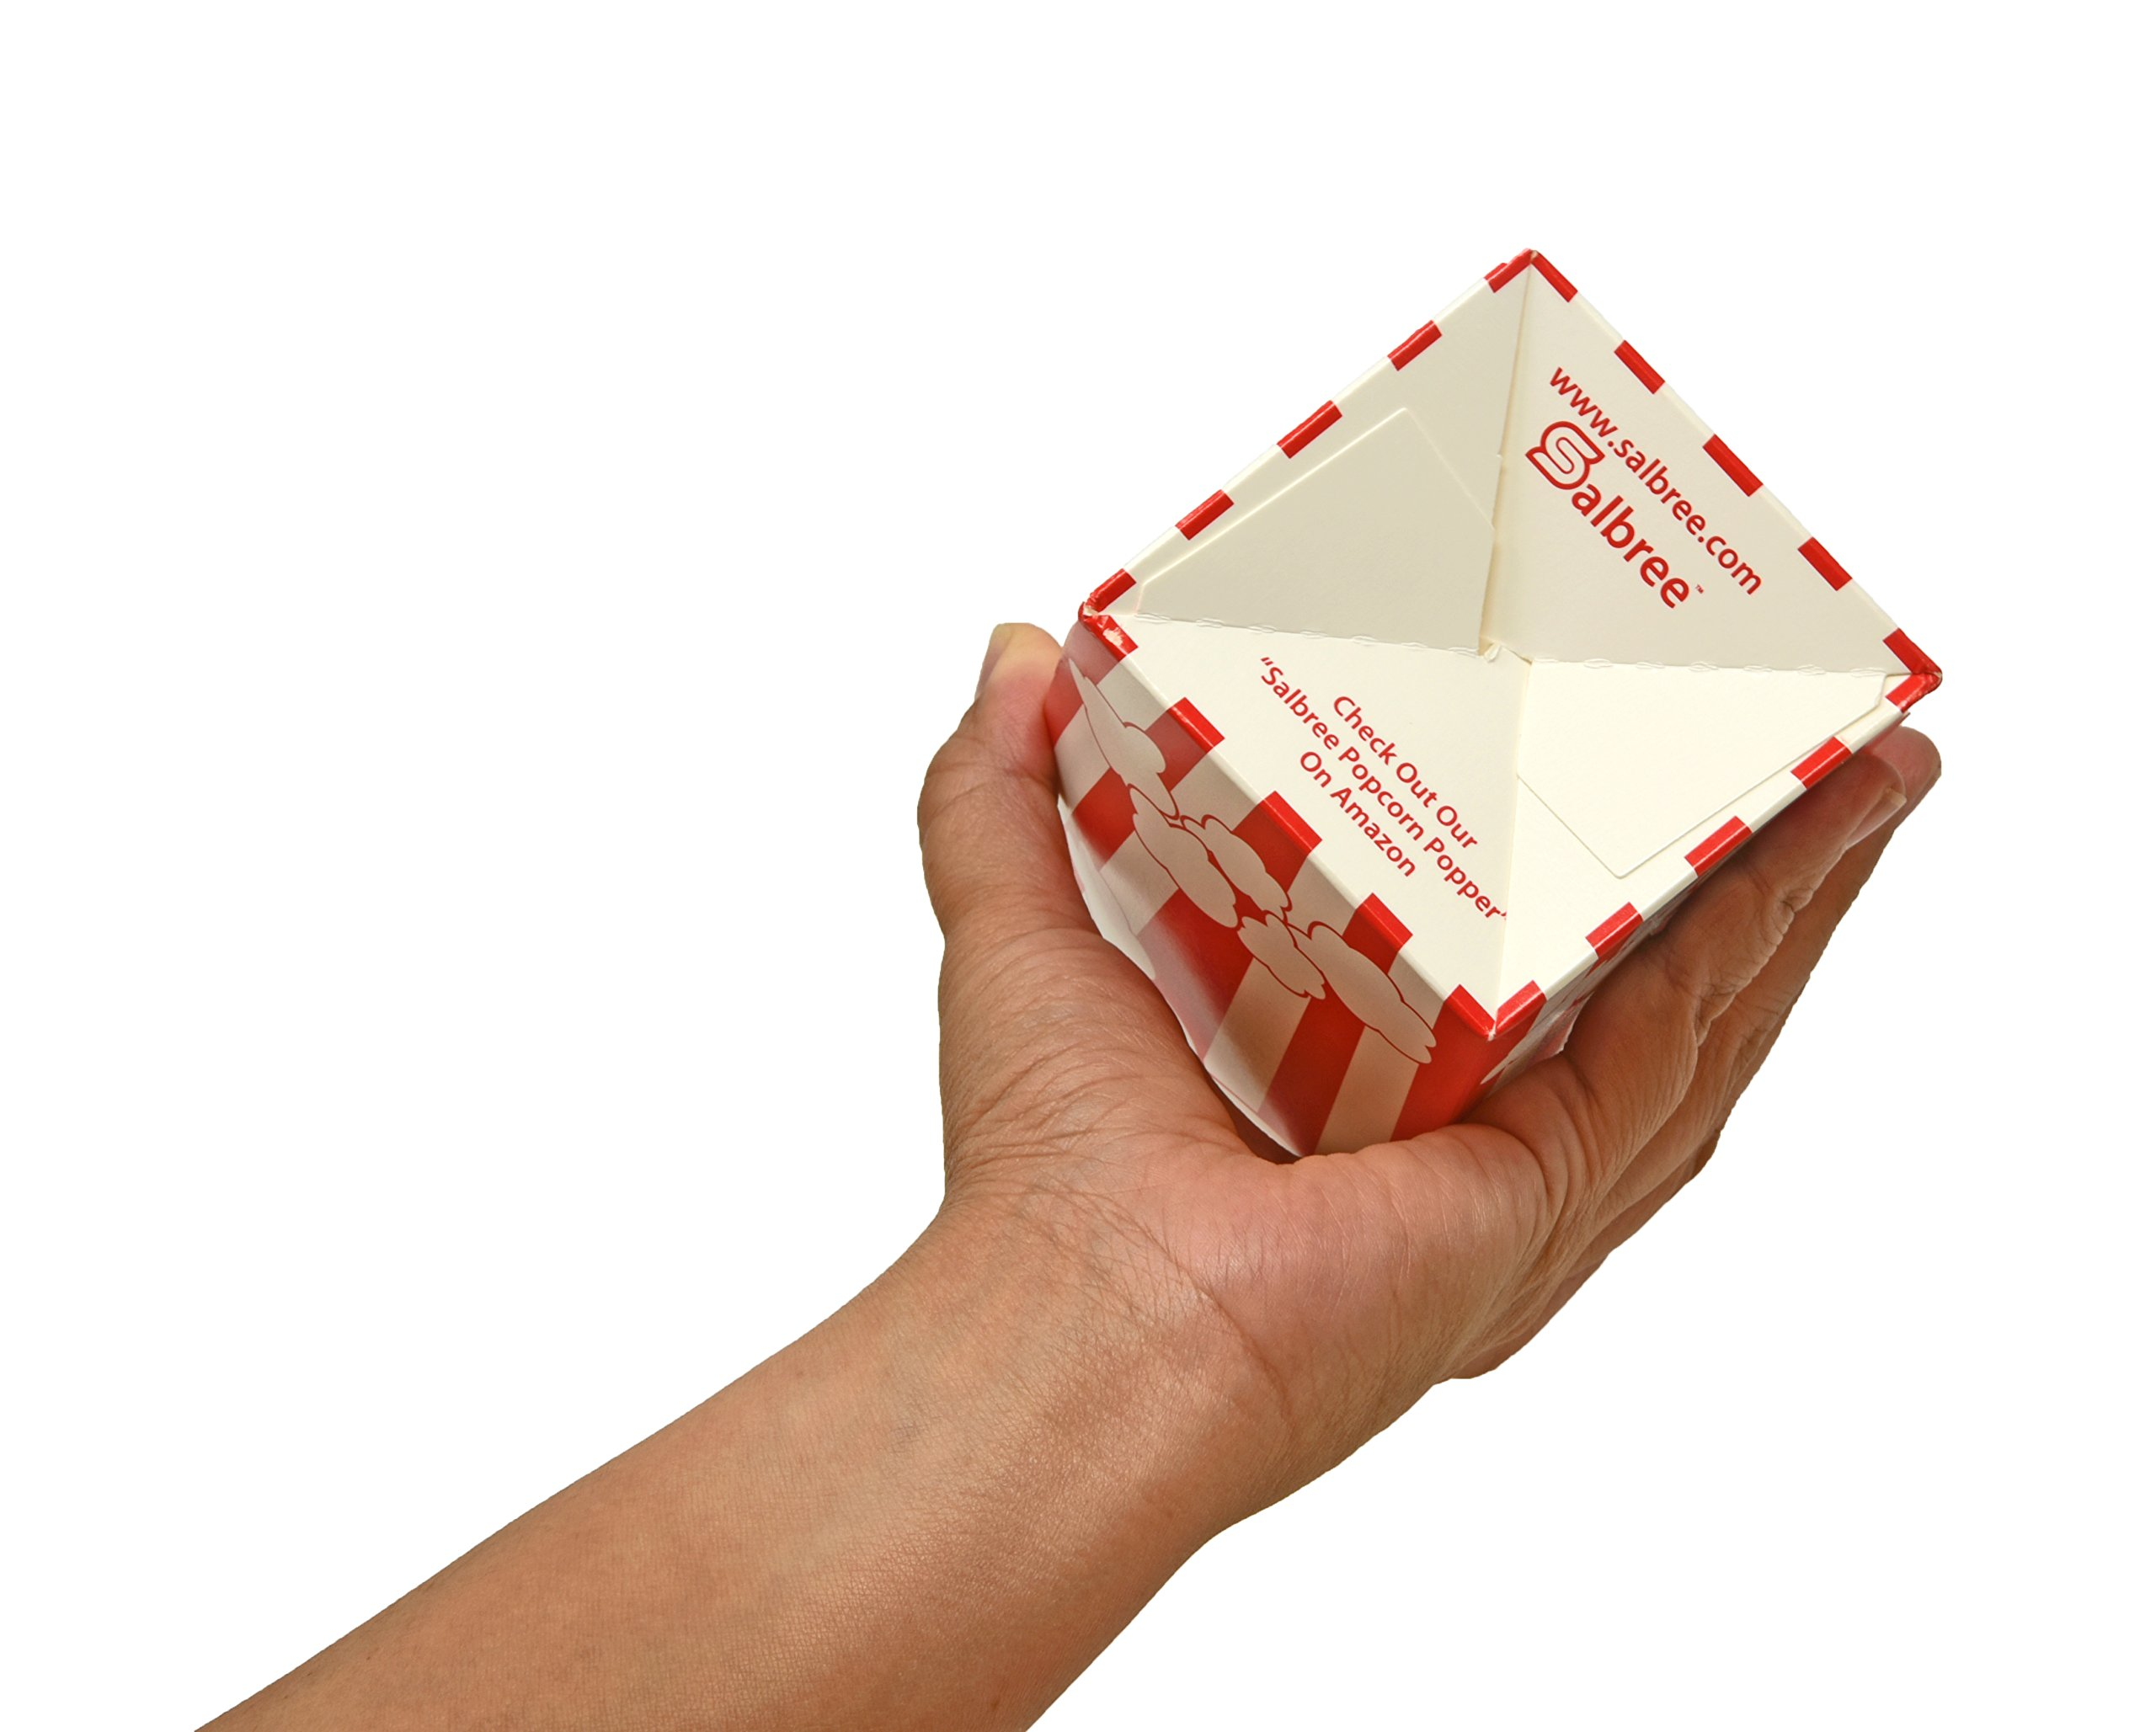 30 Popcorn Boxes, 7.75'' Inches Tall and Holds 46 Oz. with Old Fashion Vintage Retro Design with Red and White Colored, Nostalgic Carnival Stripes by Original Salbree by Salbree (Image #8)